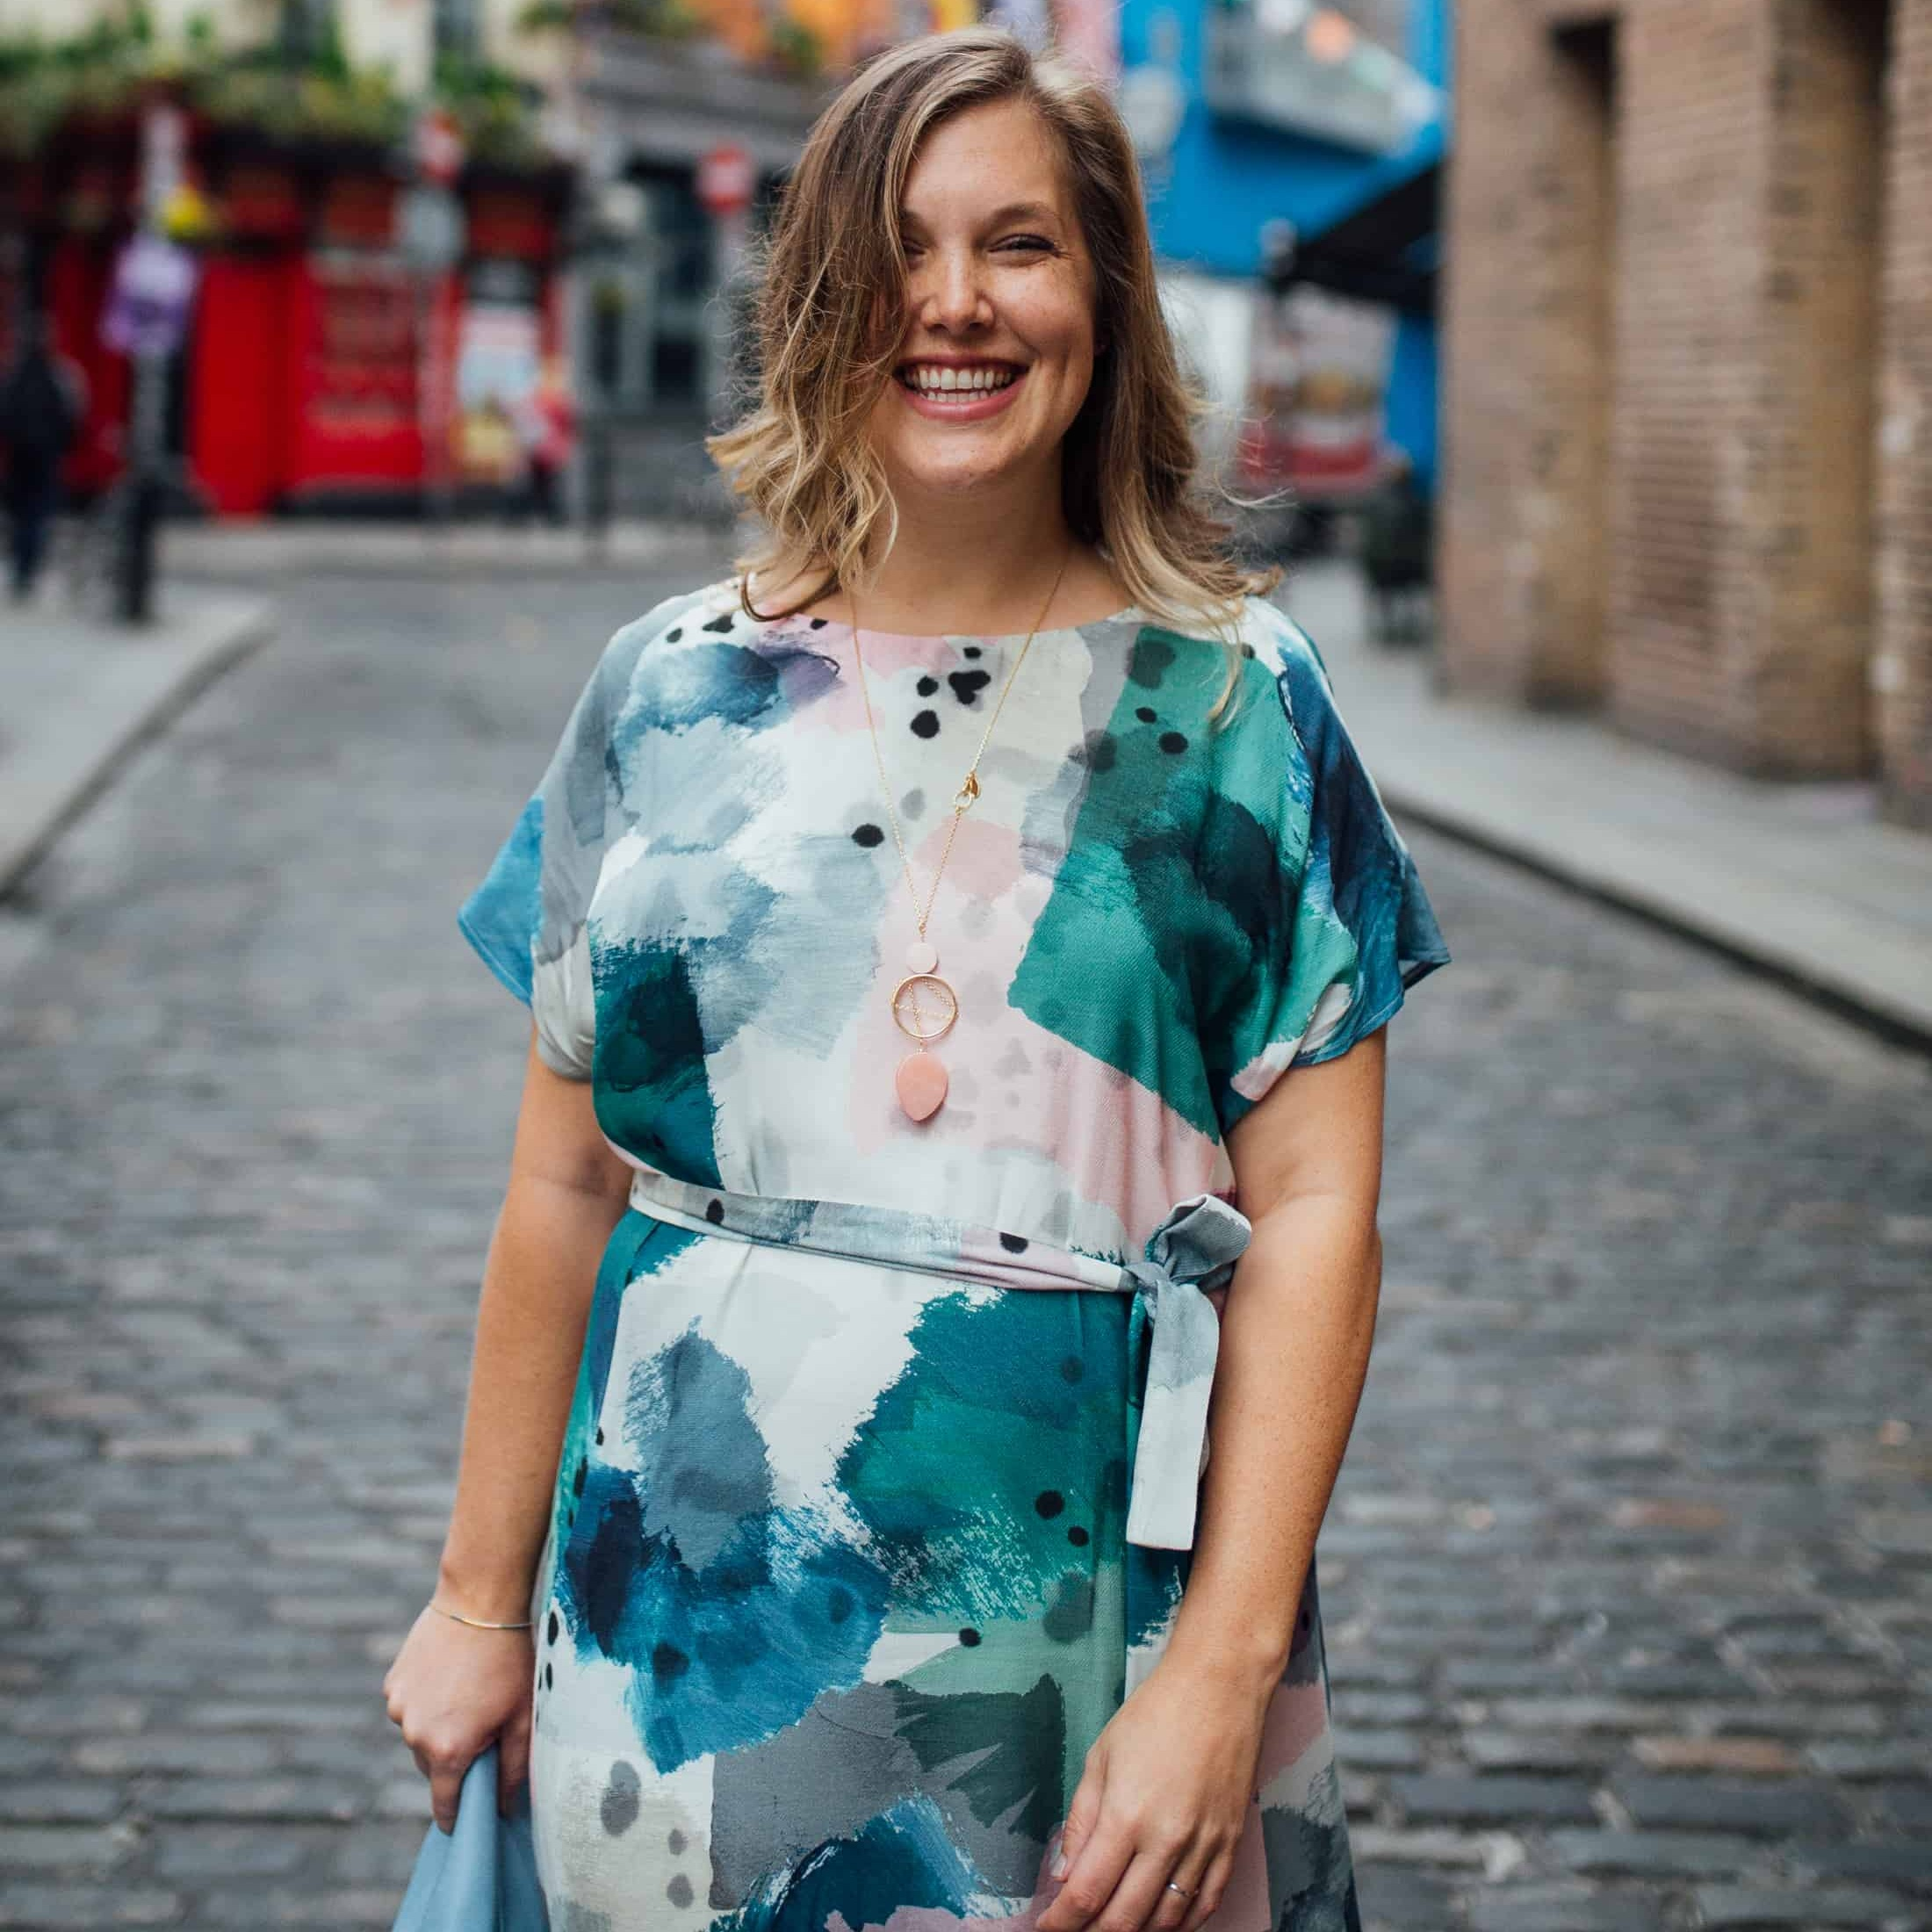 Kate, owner - I am the person behind North & Leisure. I still handle 100% of the trip planning. Creating your itinerary is my favorite part. The ultimate puzzle. It's more than choosing hotels and activities. It's reading between the lines and suggesting unique experiences. It's about the things that you don't know to ask for.